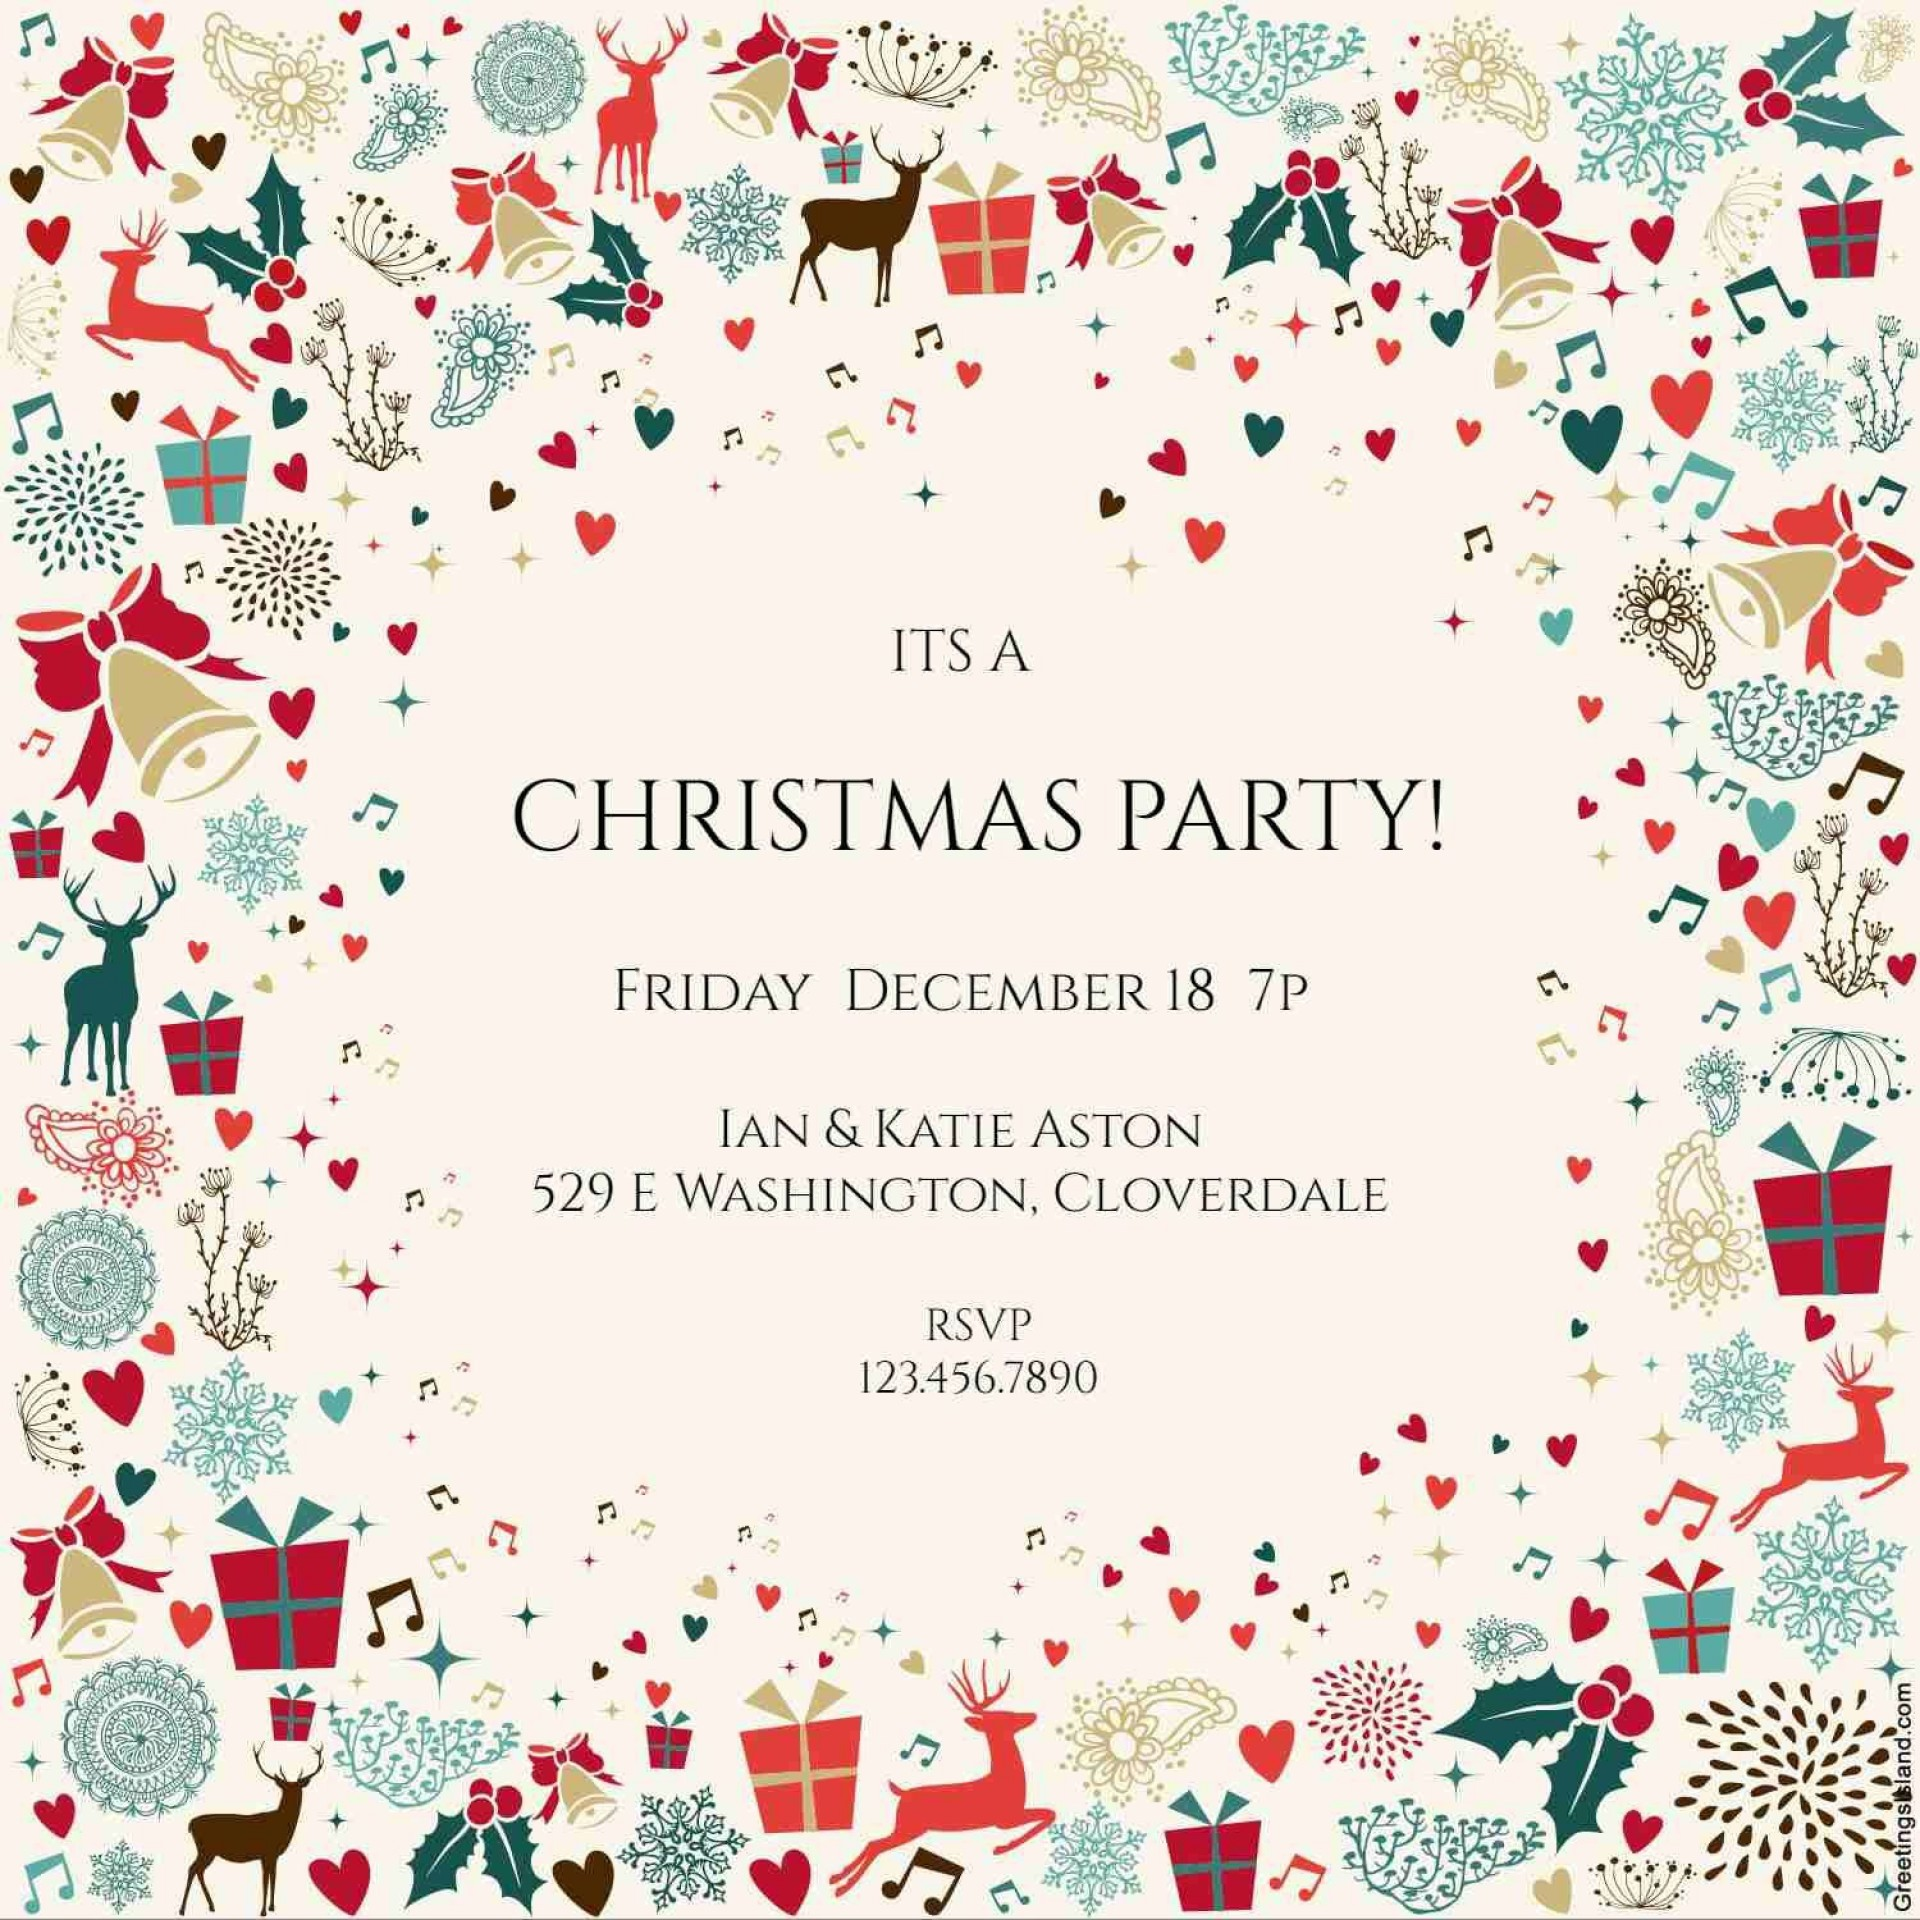 004 Stunning Free Online Holiday Invitation Template Highest Quality  Templates1920